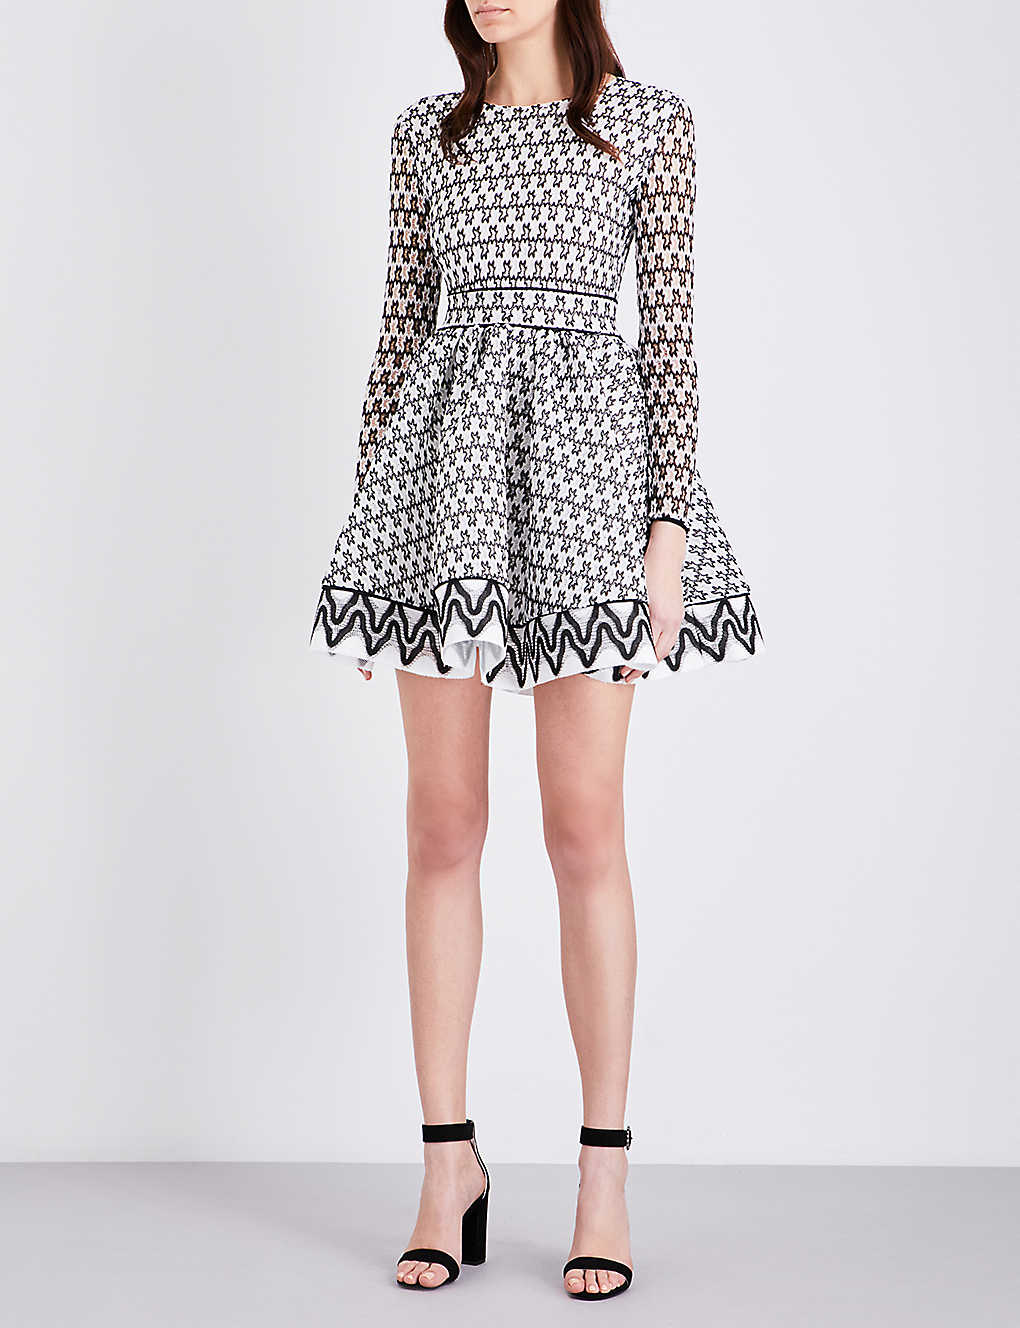 Dresses - Clothing - Womens - Selfridges  Shop Online